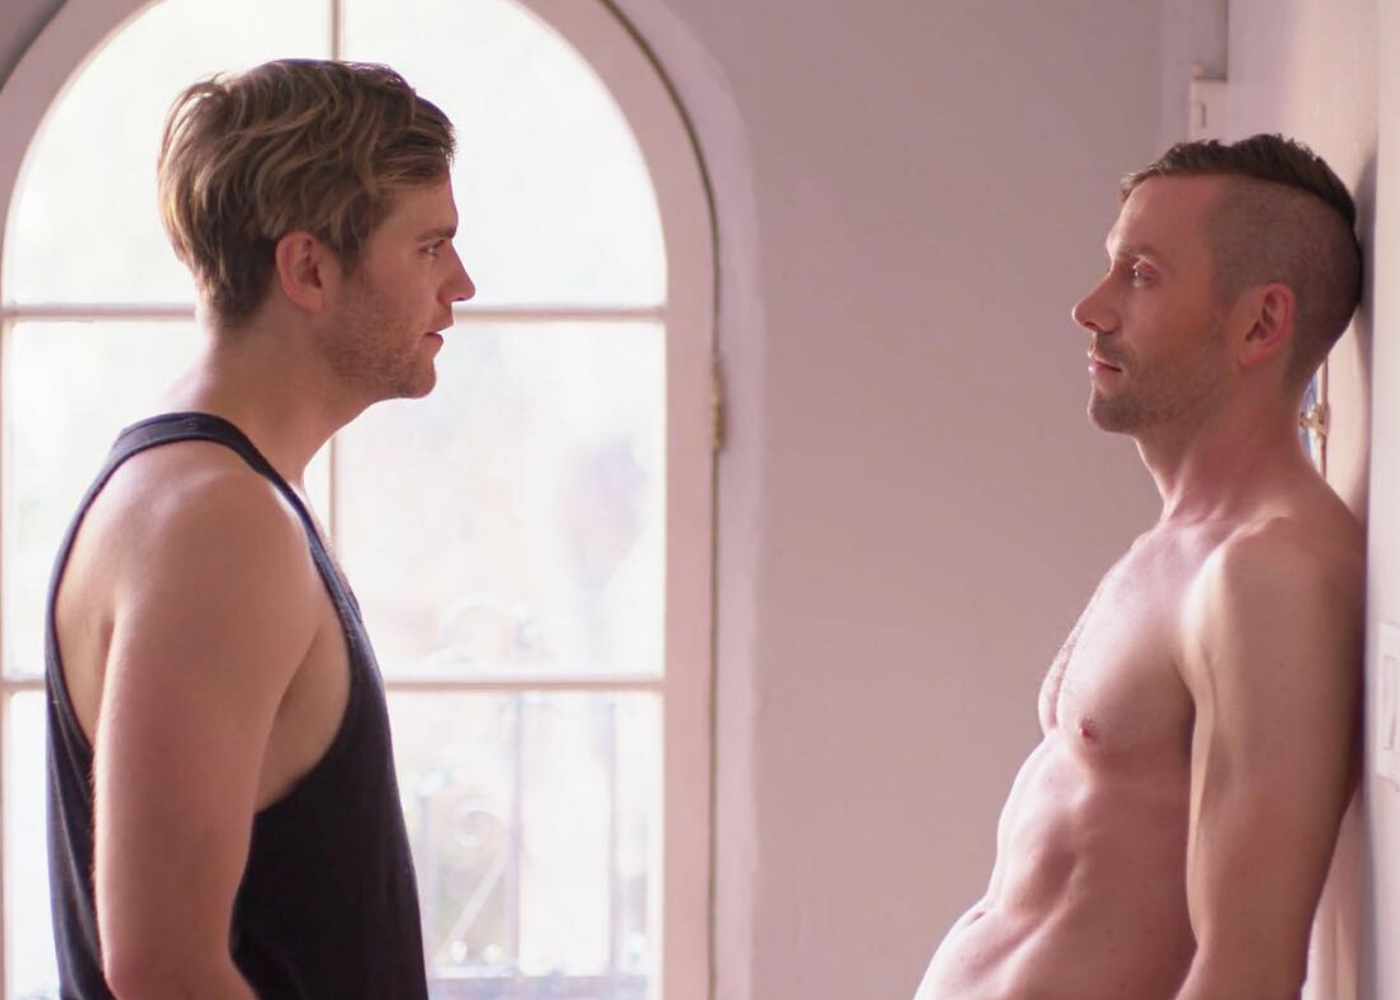 LGBTQ movies and shows: EastSiders